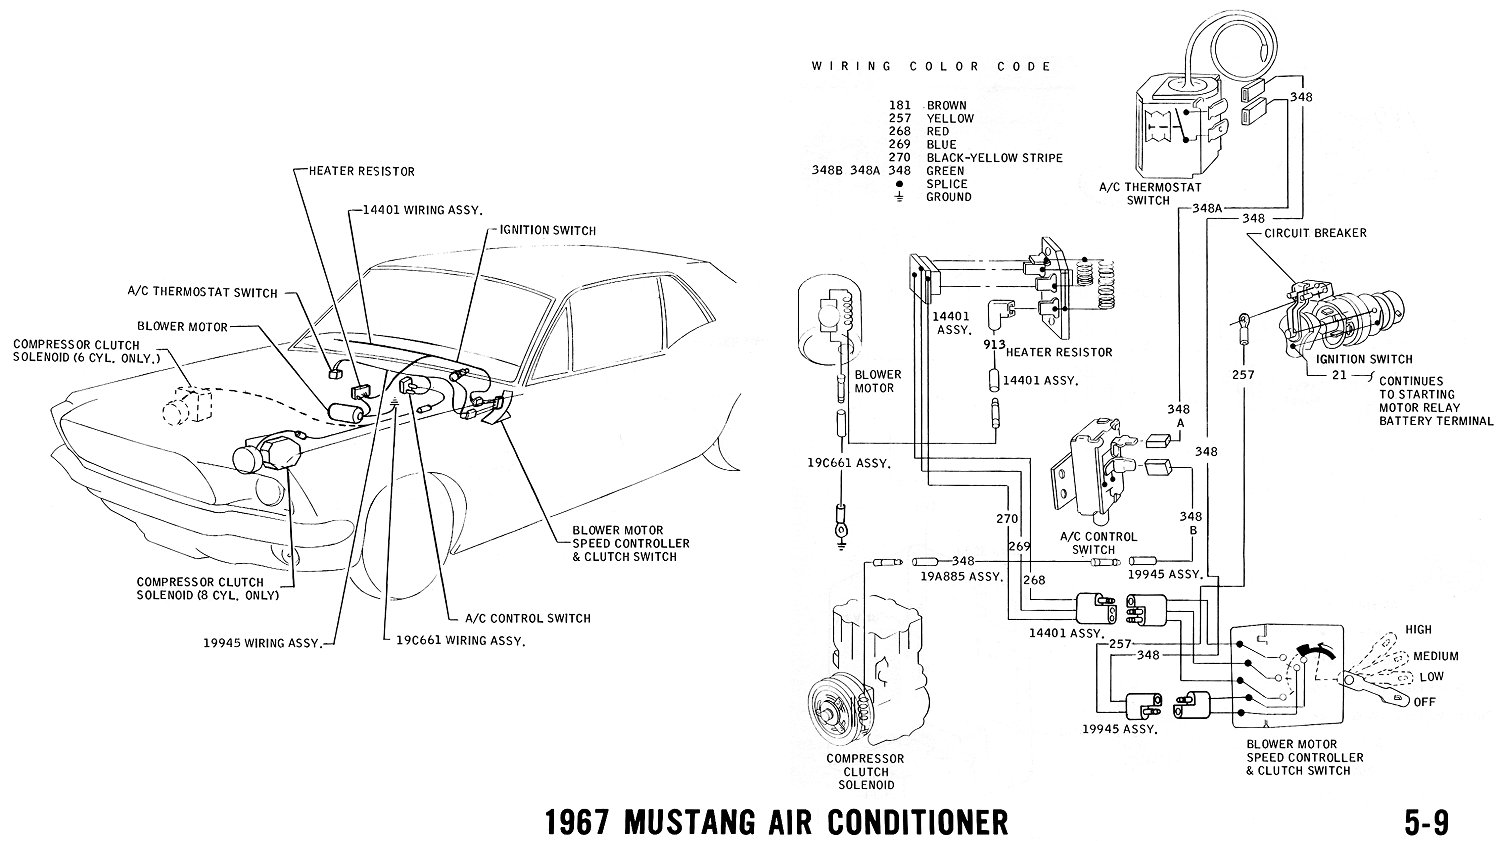 1494035 Determining Ride Height For Alignment Specs On Lifted Truck as well 1967 Mustang Wiring And Vacuum Diagrams in addition 8F121E03 moreover RepairGuideContent likewise 3jwt2 2007 Toyota Camry Abs Light On. on diagnosis code chart